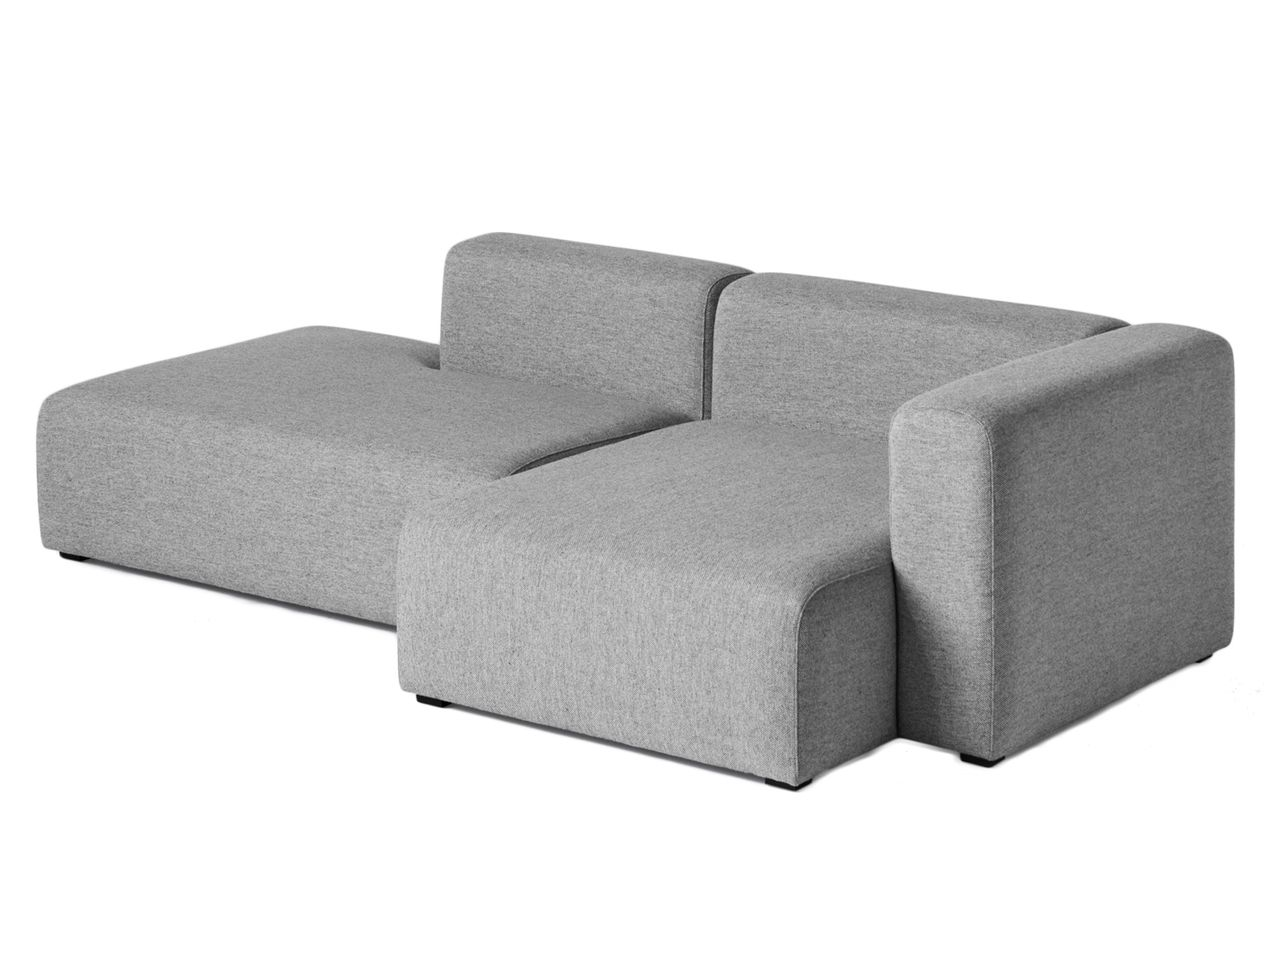 Skonto Ecksofa Hay Mags 2 5 Seater Sofa Combination 3 Mags 5 Seater